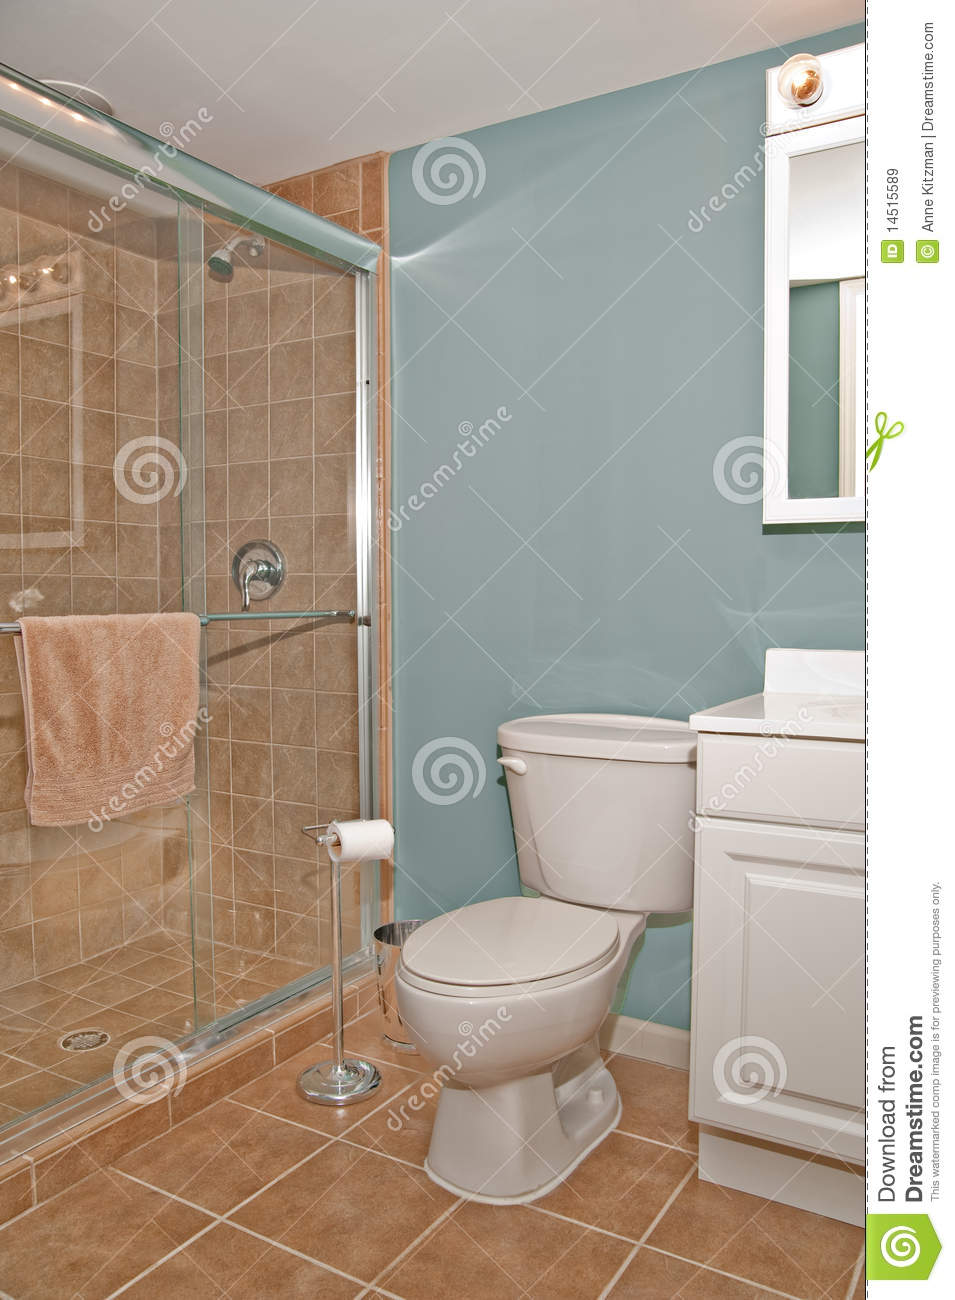 Bathroom Toilet Shower